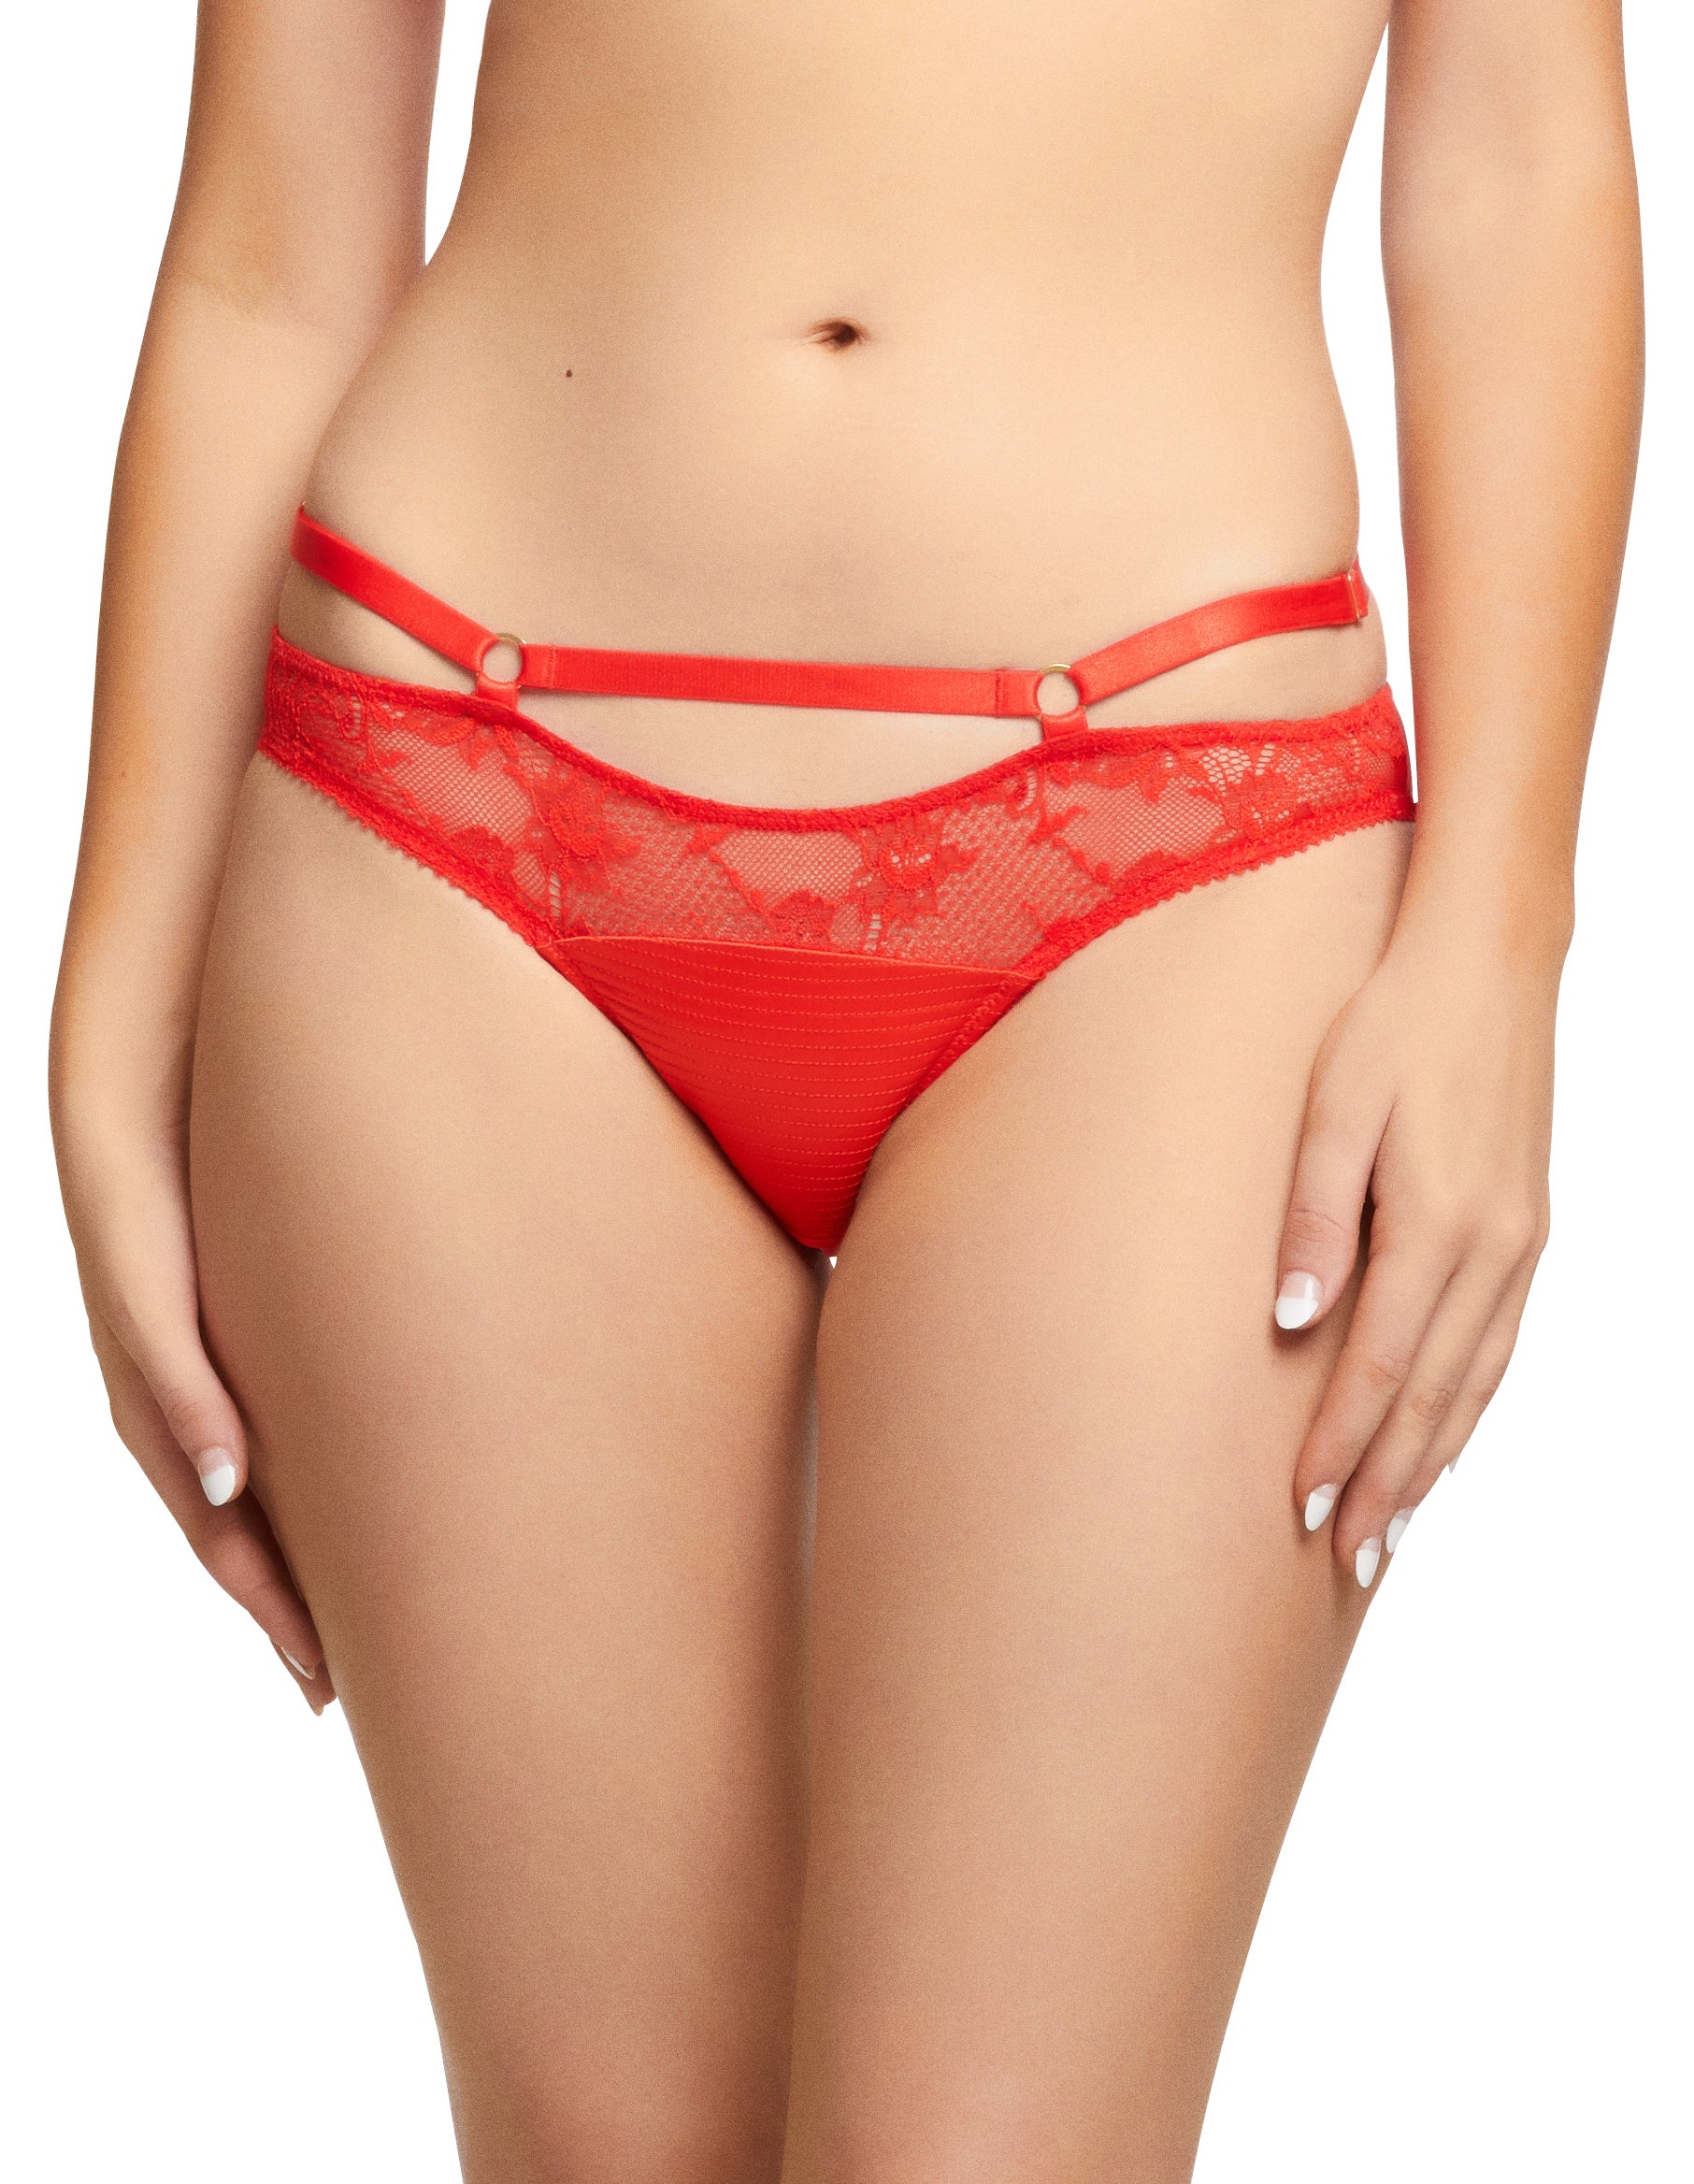 Dita Von Teese Madame X Bikini Brief in Flame - sizes XS-XL